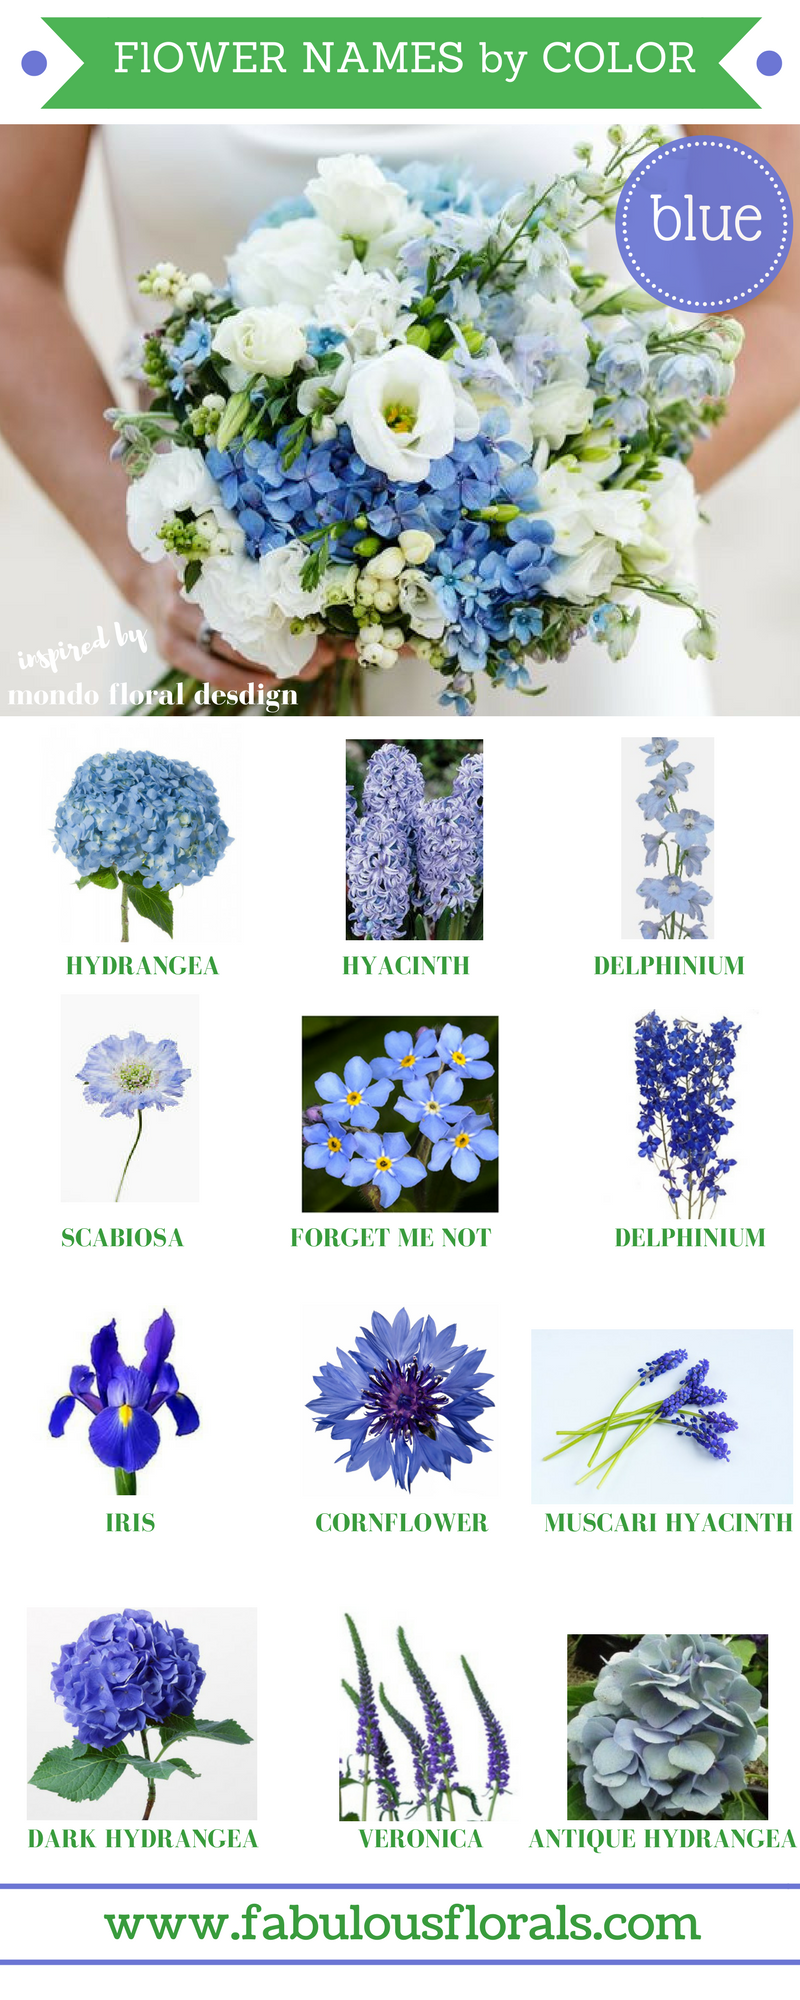 FLOWER NAMES BY COLOR! 2017 wedding trends! . Your 1